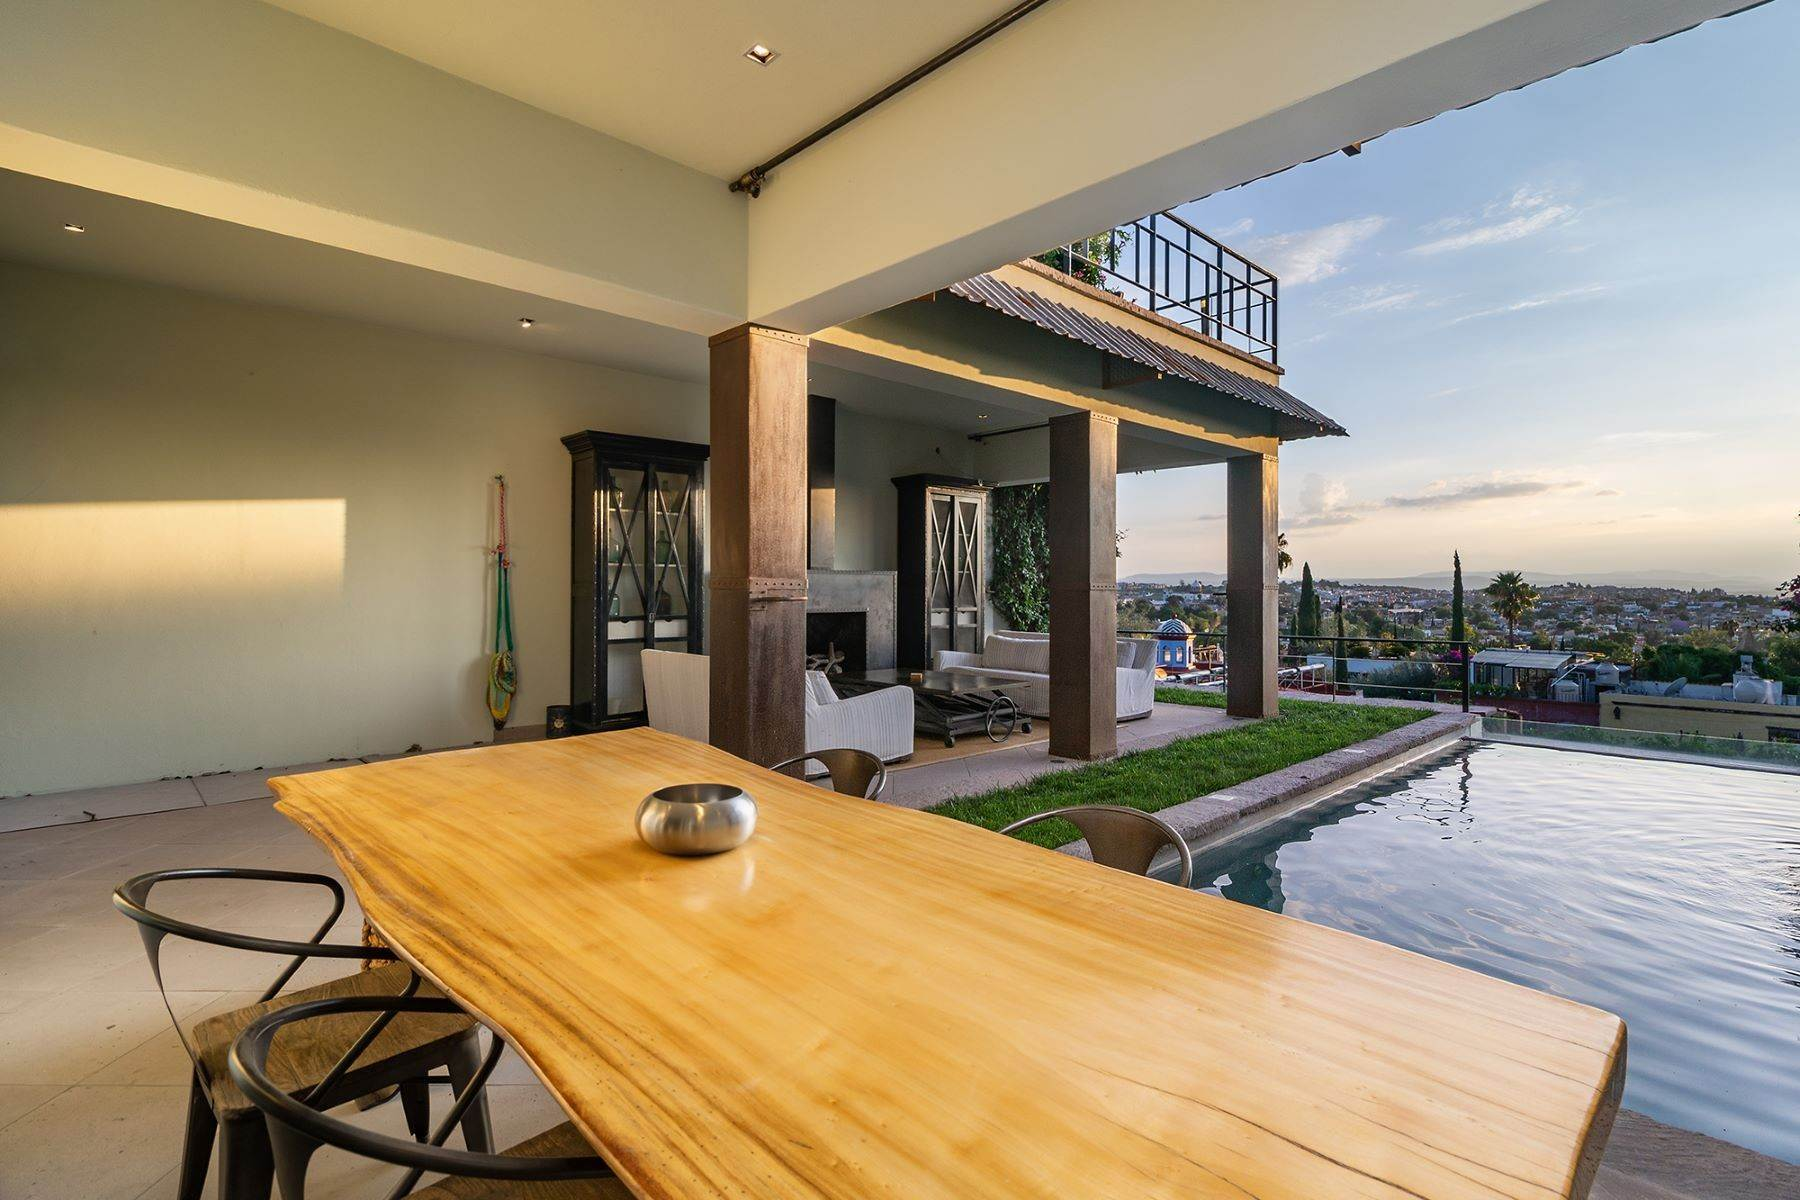 Single Family Homes for Sale at Casa CocoBella Sollano 47, Centro San Miguel De Allende, Guanajuato 37700 Mexico